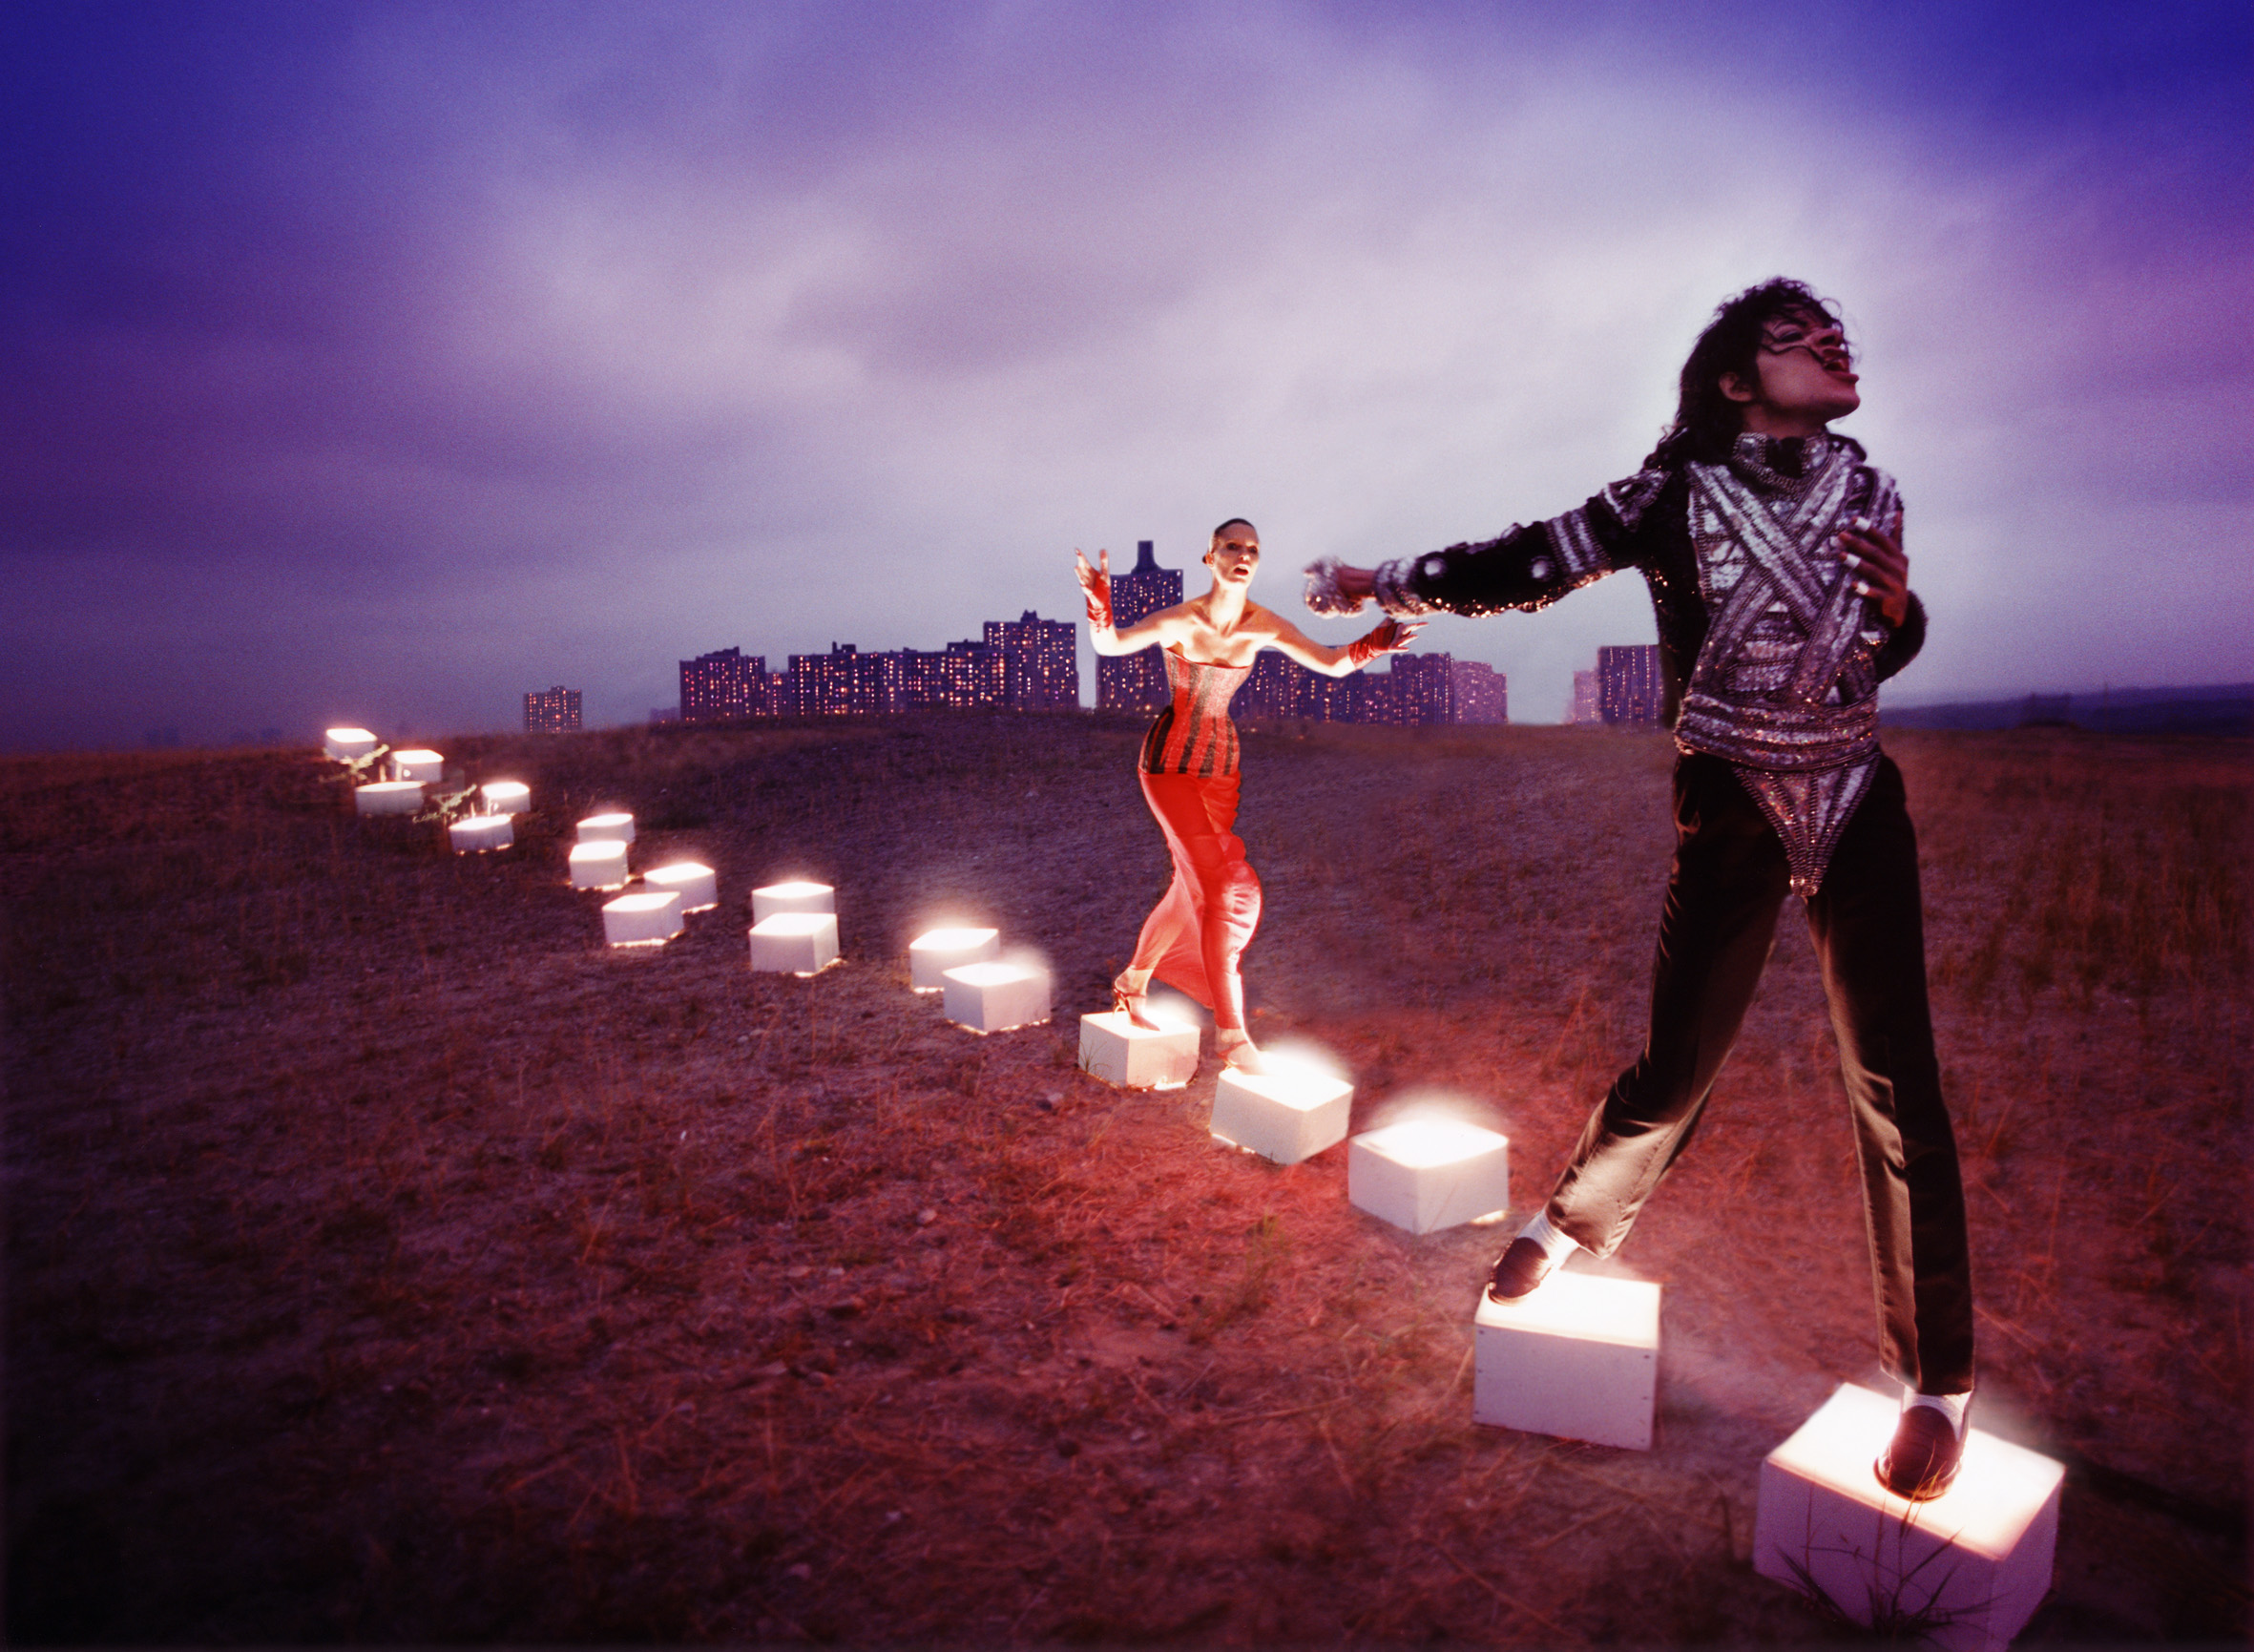 an_illuminating_path_by_david_lachapelle.jpg